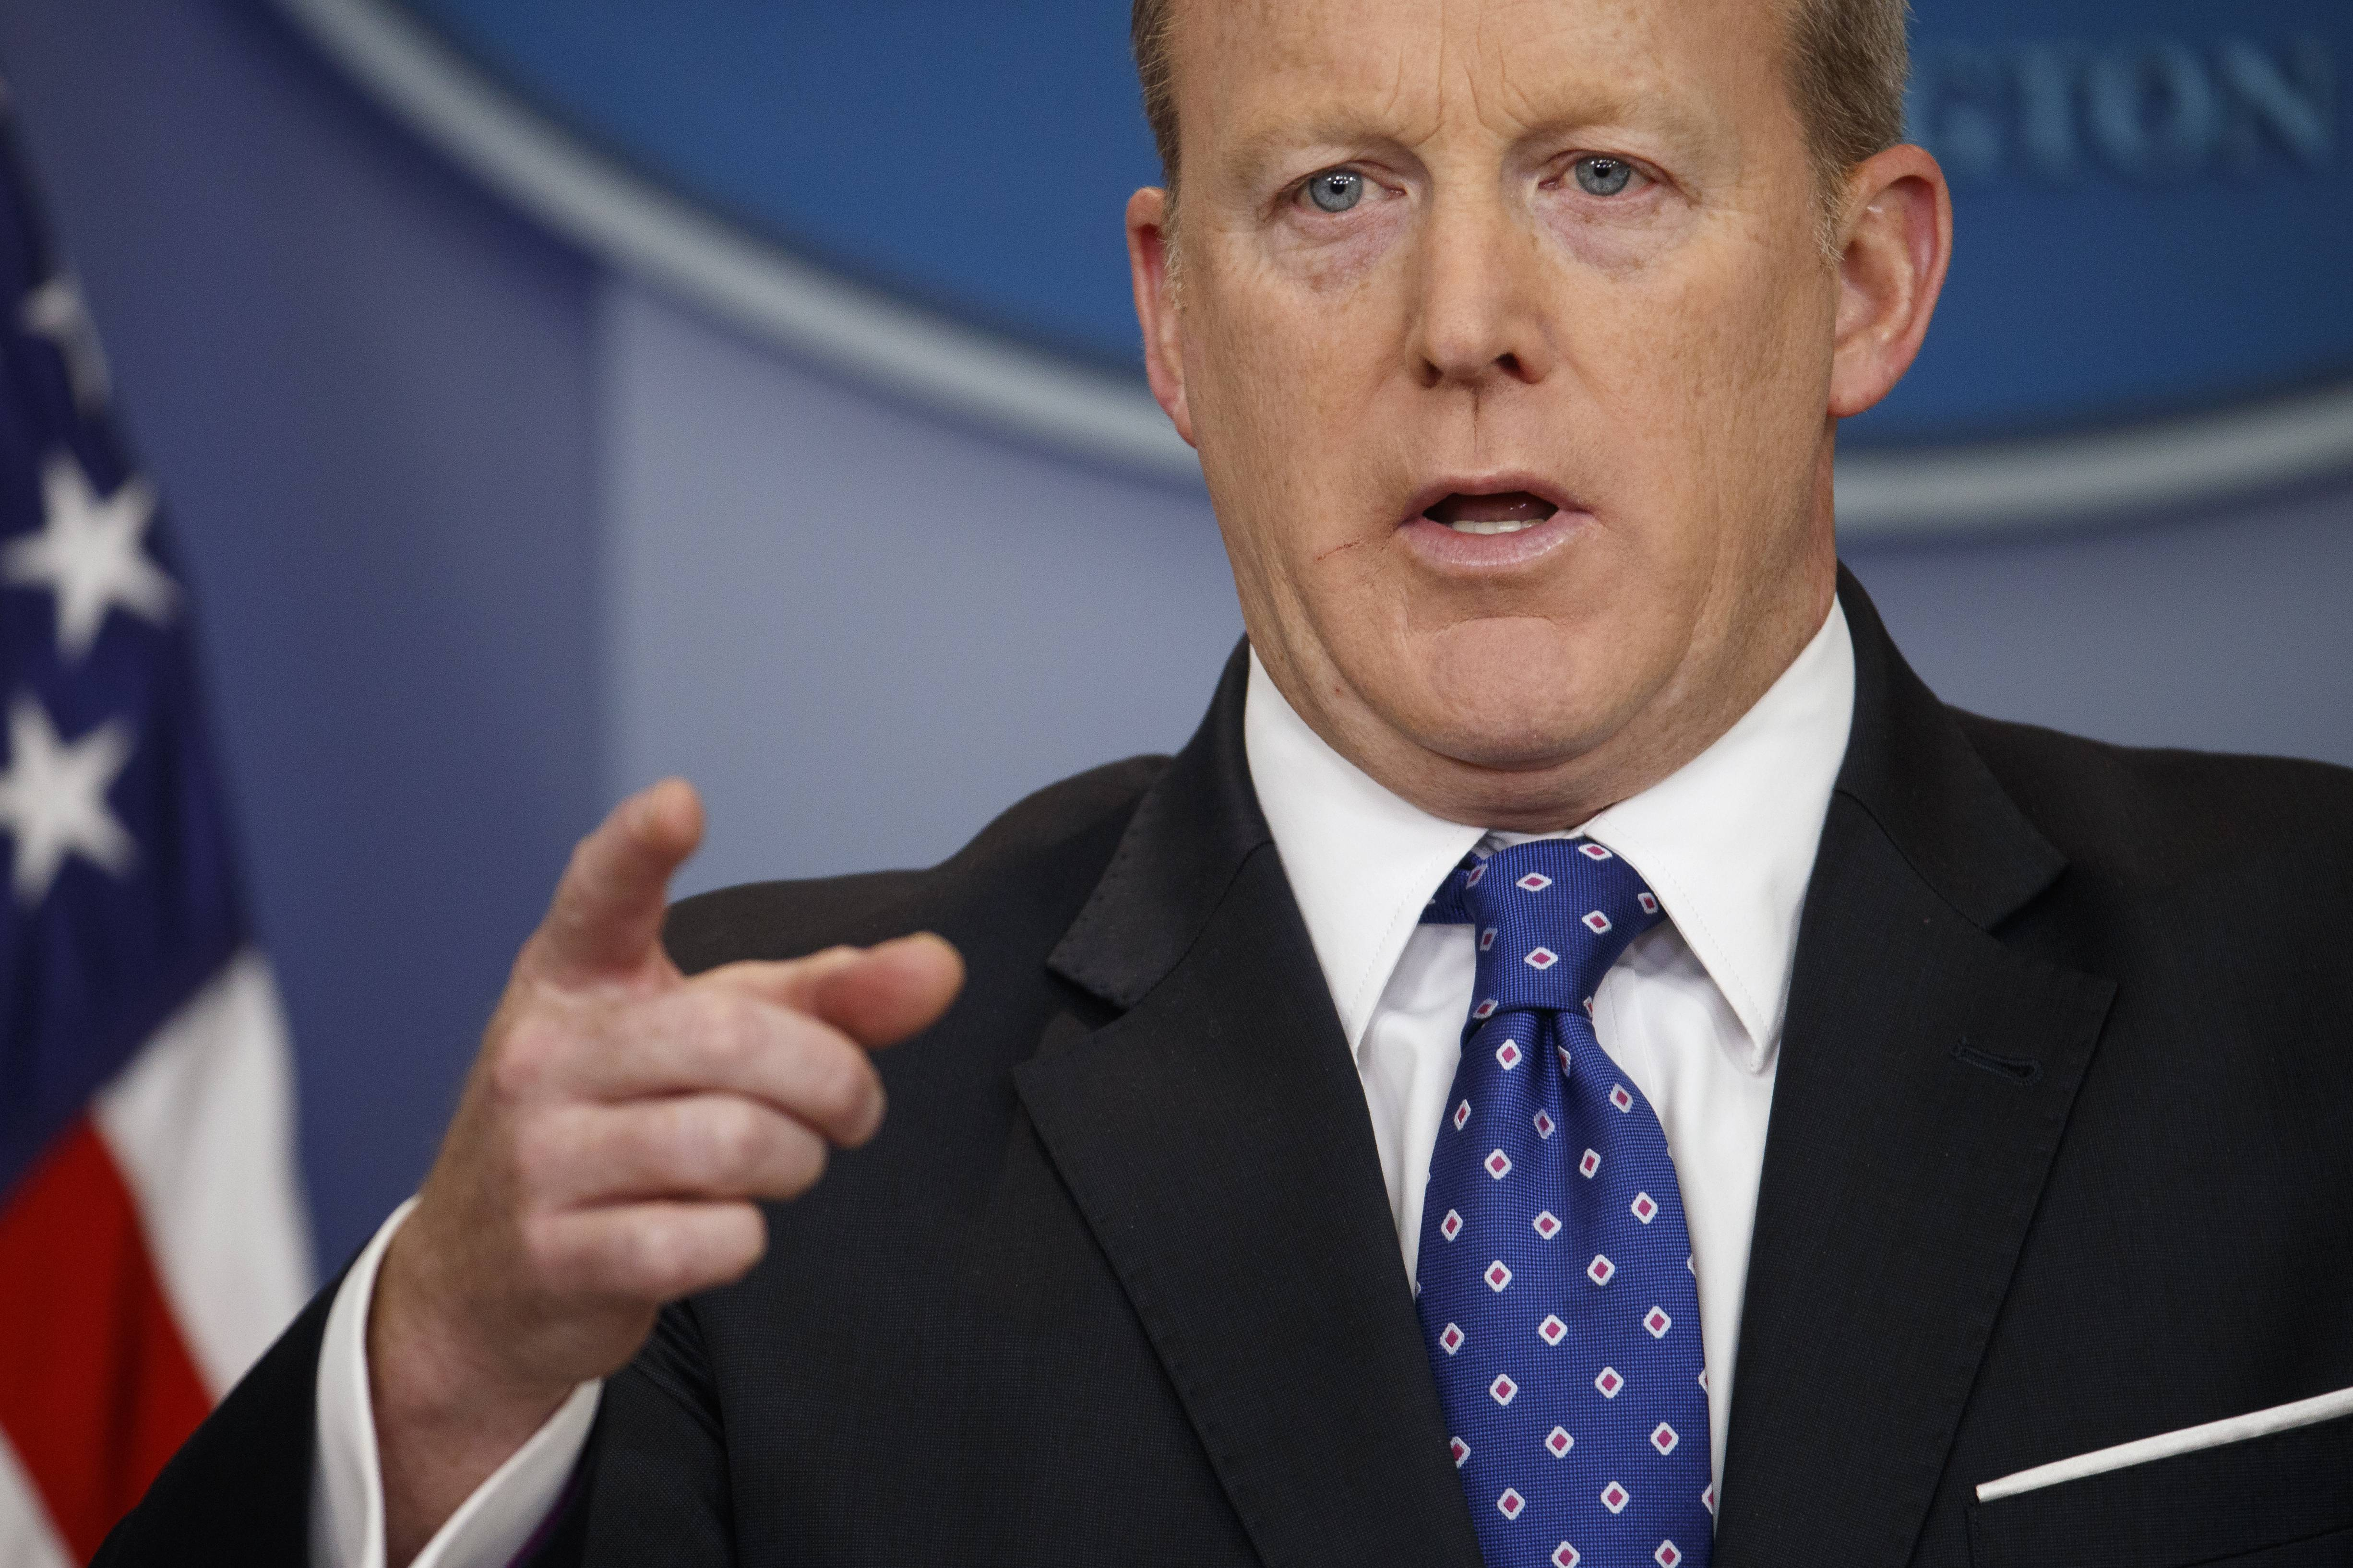 White House press secretary Sean Spicer has resigned over hiring of new communications aide.